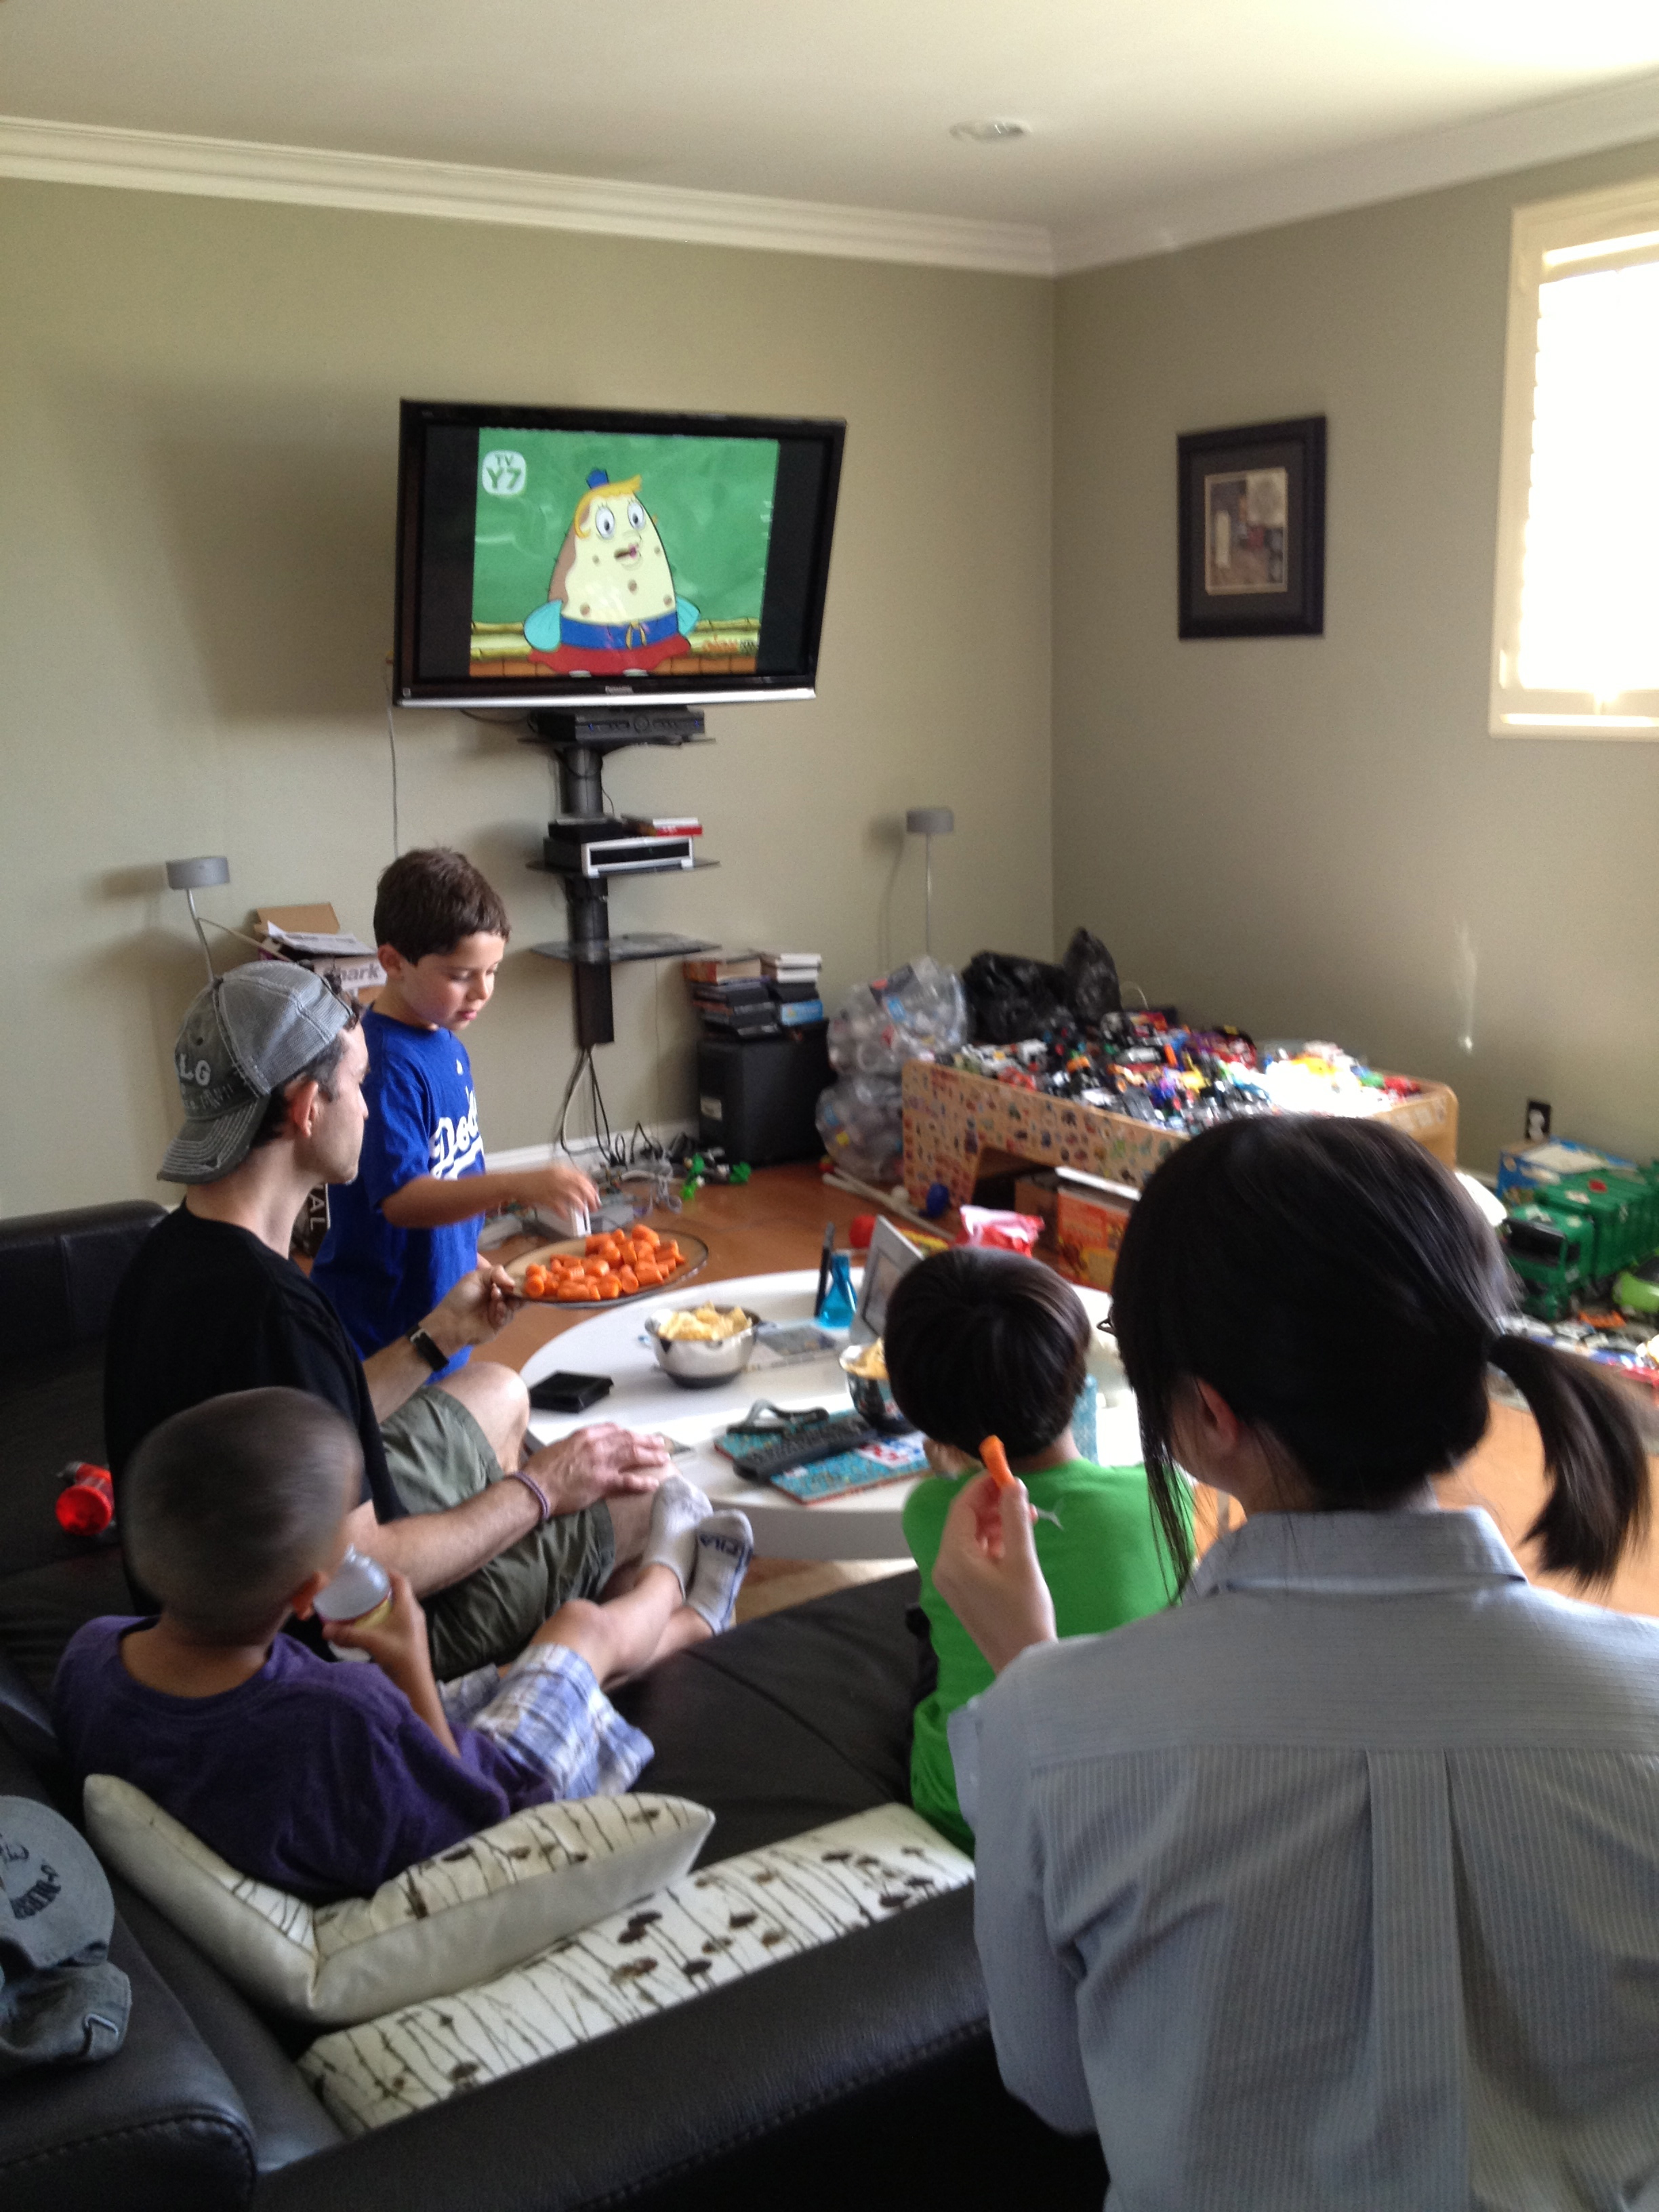 After running a diary study, we followed up with the participants and watched TV with them.